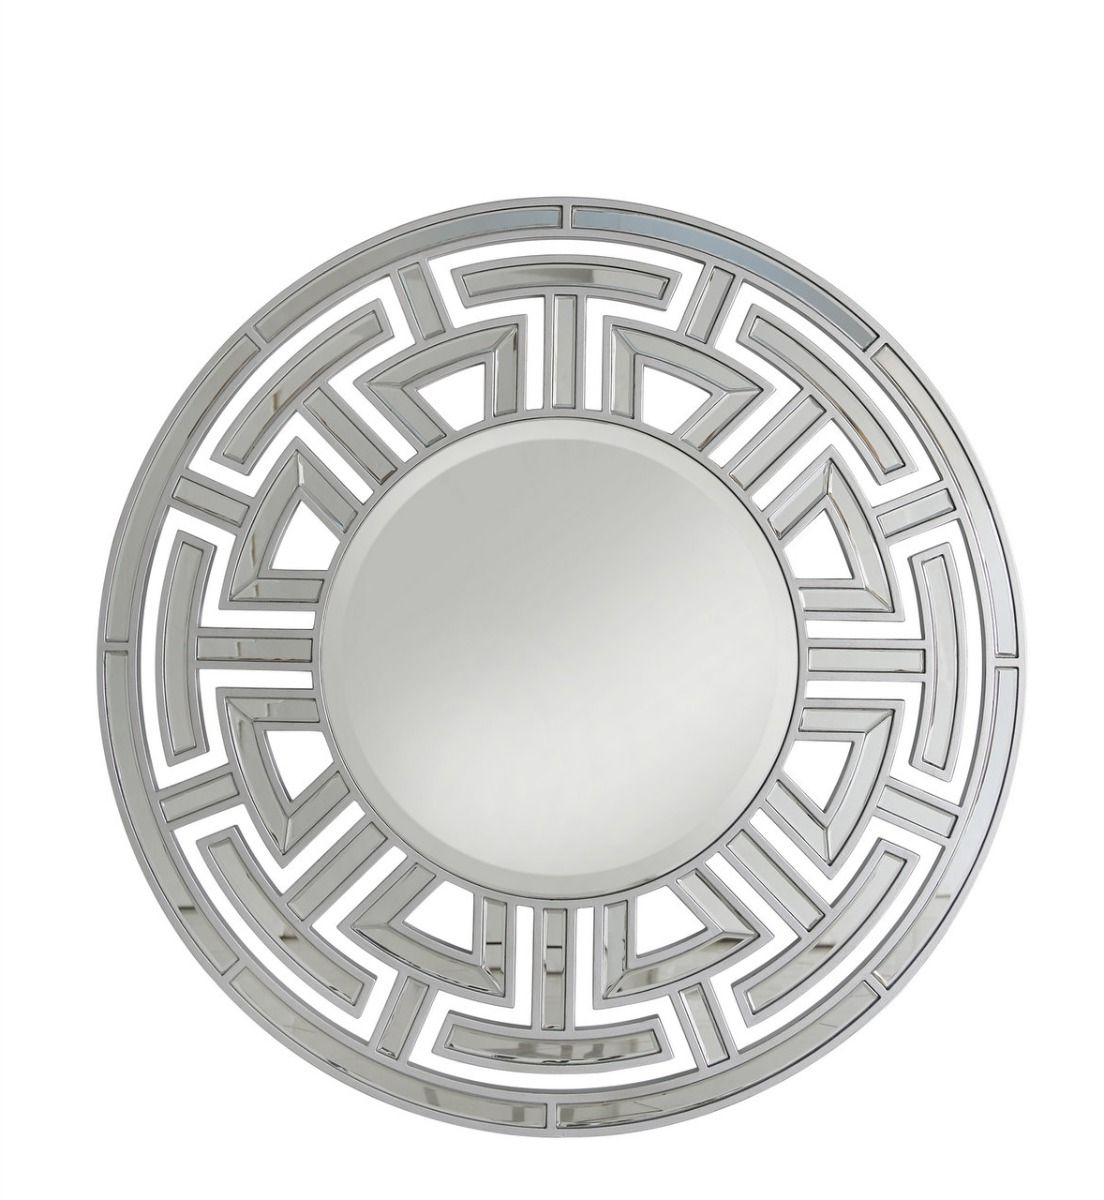 The Louis Round Wall Mirror Silver With Most Up To Date Round Silver Wall Mirrors (View 14 of 20)